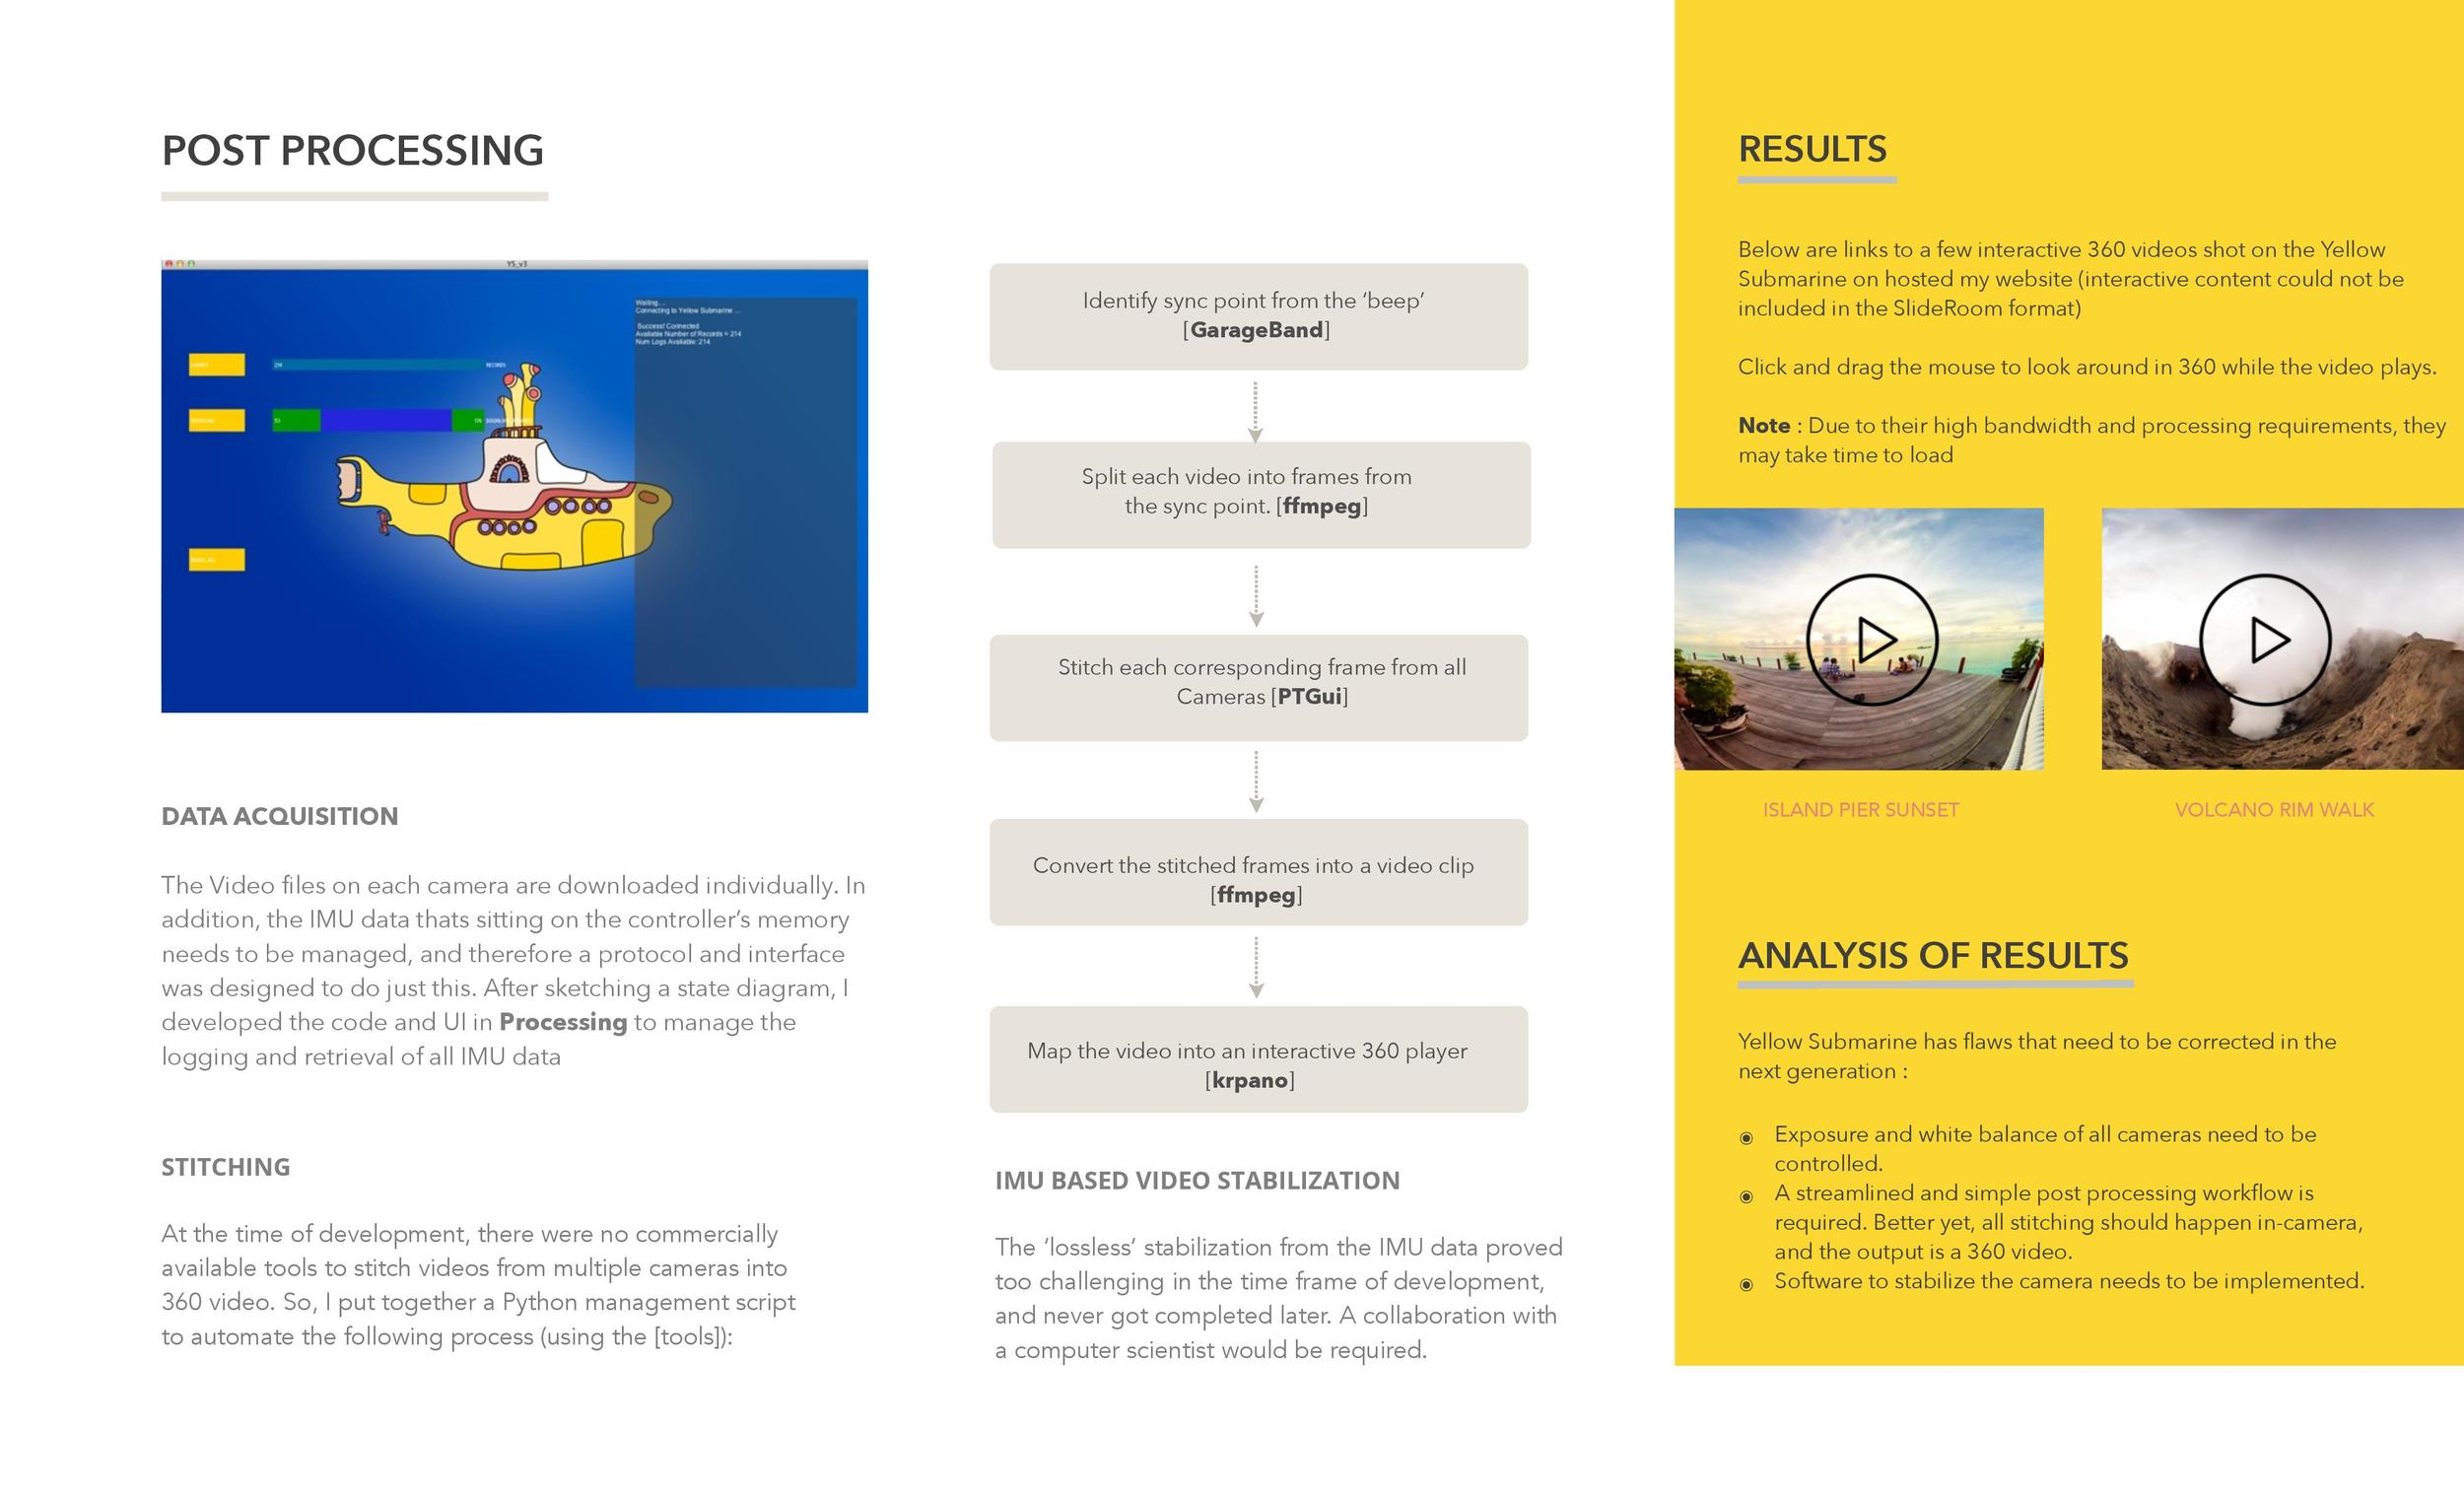 YellowSubmarine-CaseStudy-better-page-008.jpg